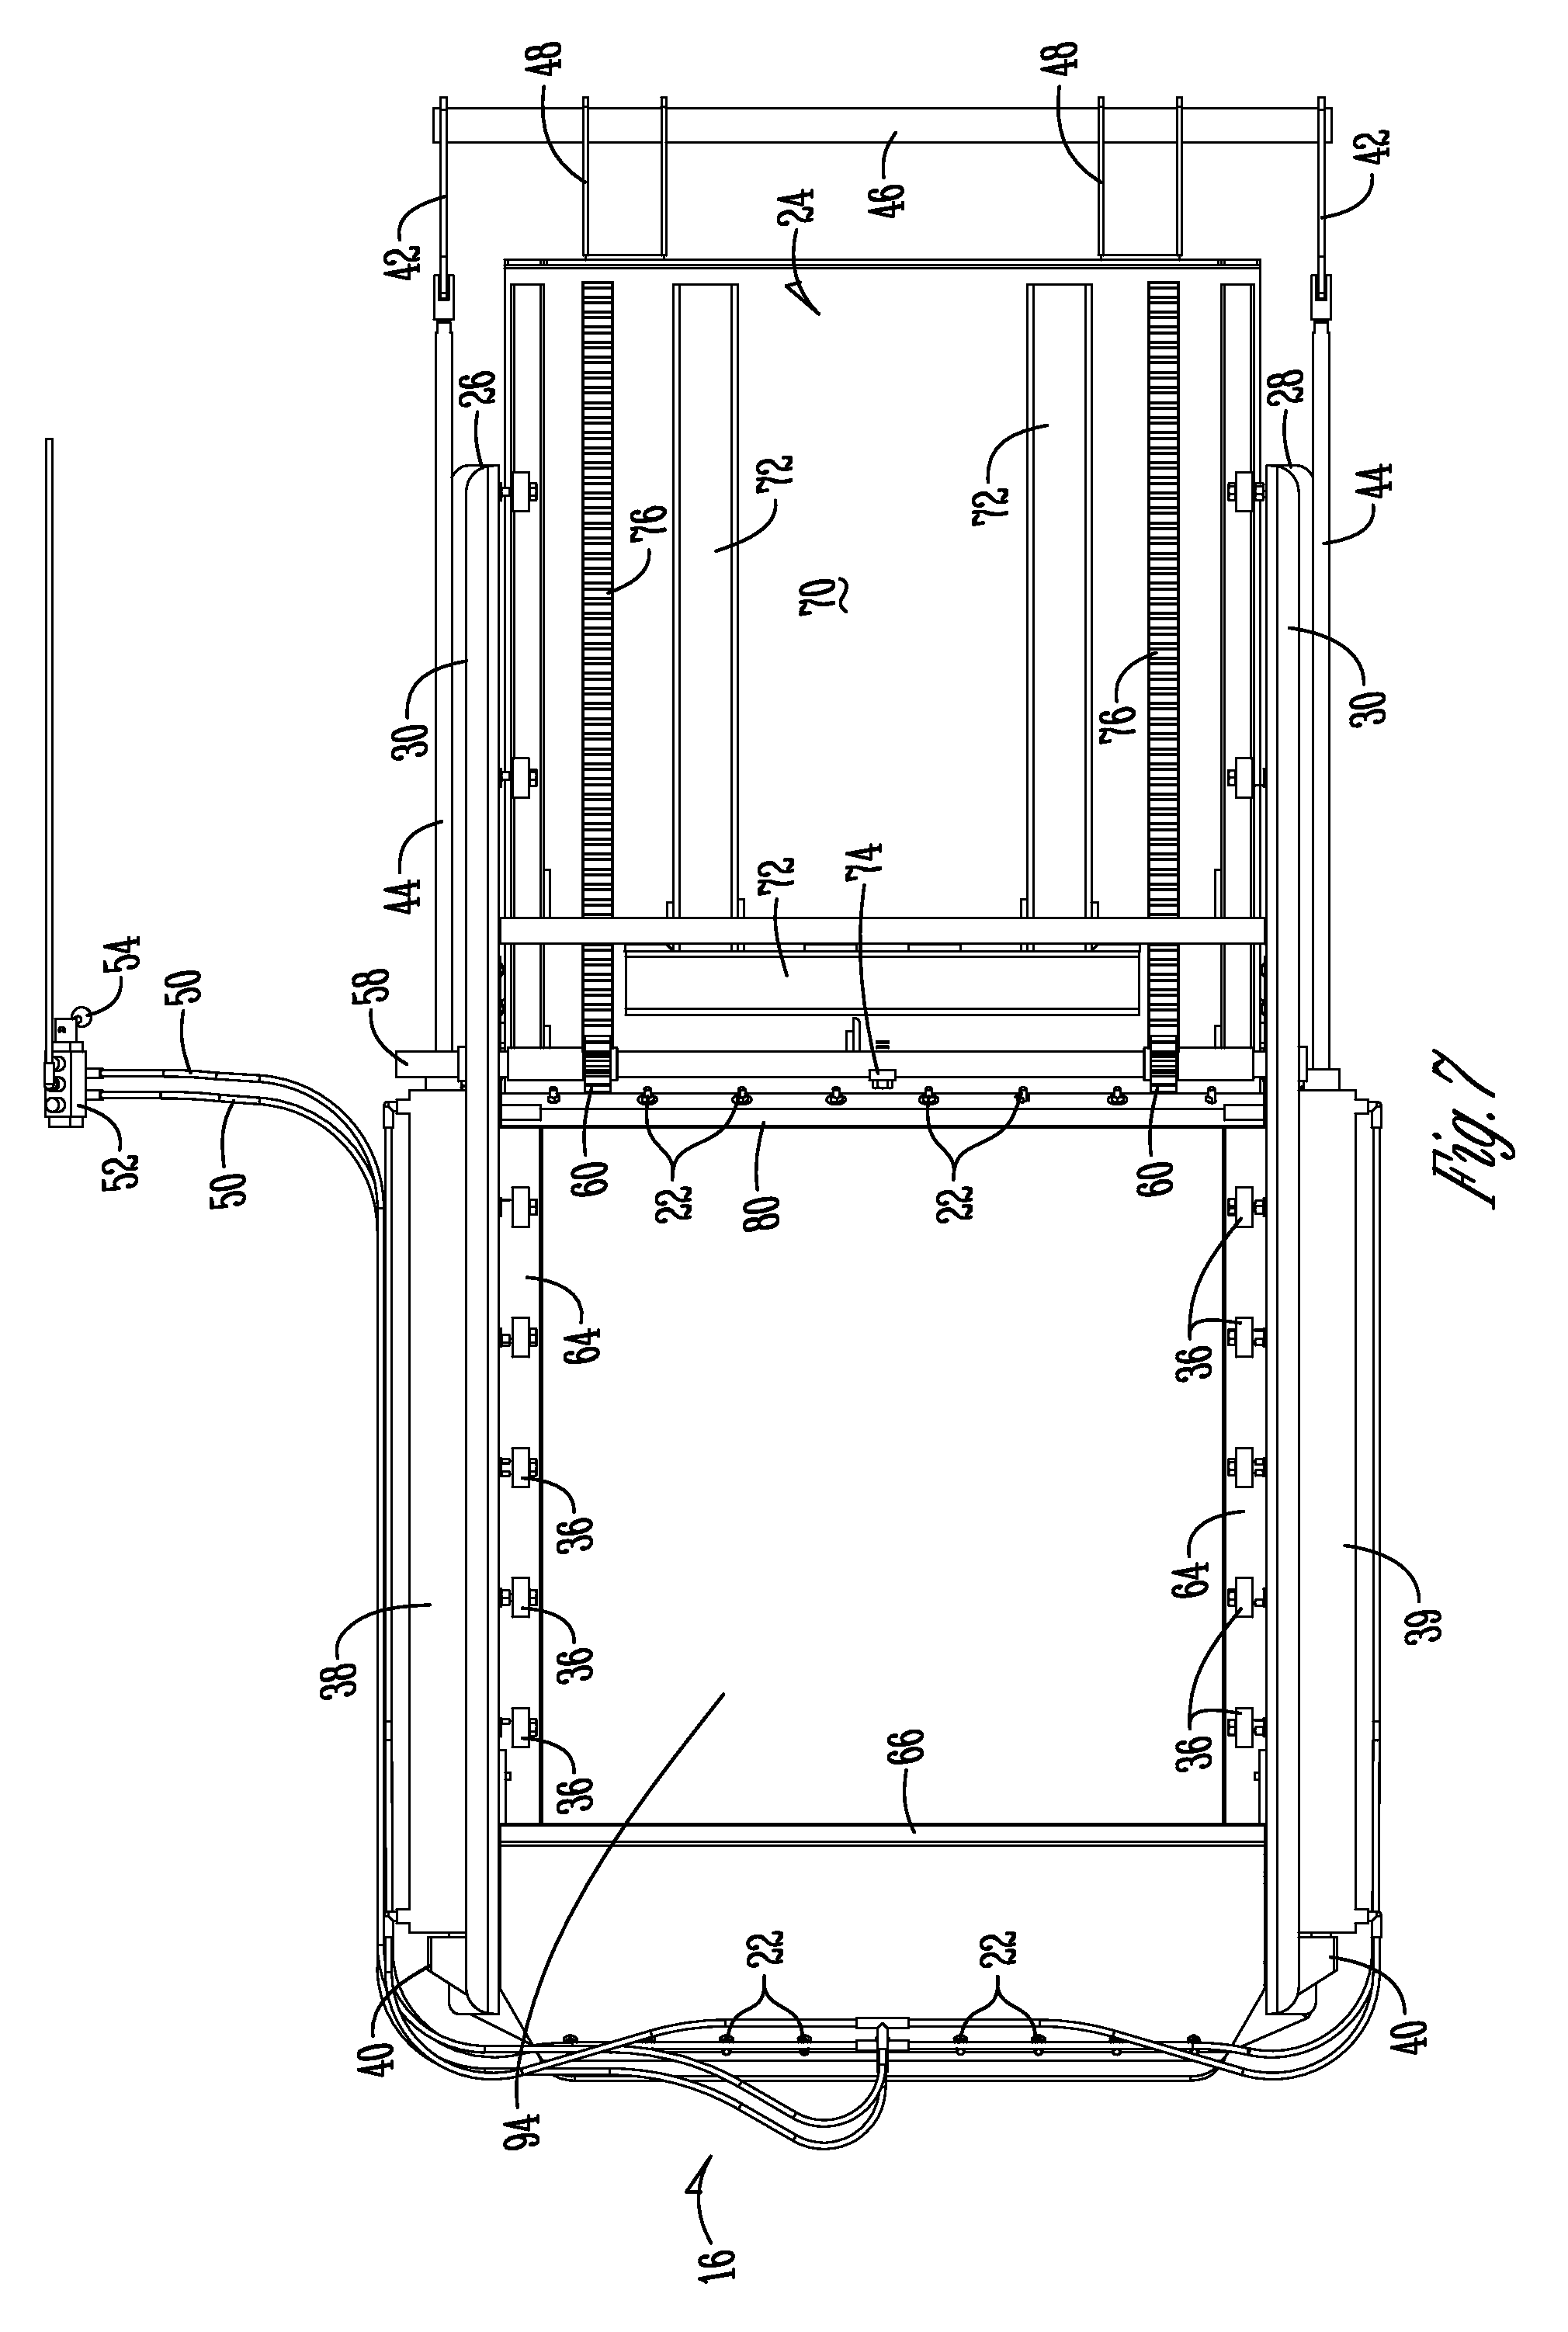 US20100270848A1 20101028 D00007 patent us20100270848 apparatus for opening hopper door google hooper trailer wiring diagram at bakdesigns.co